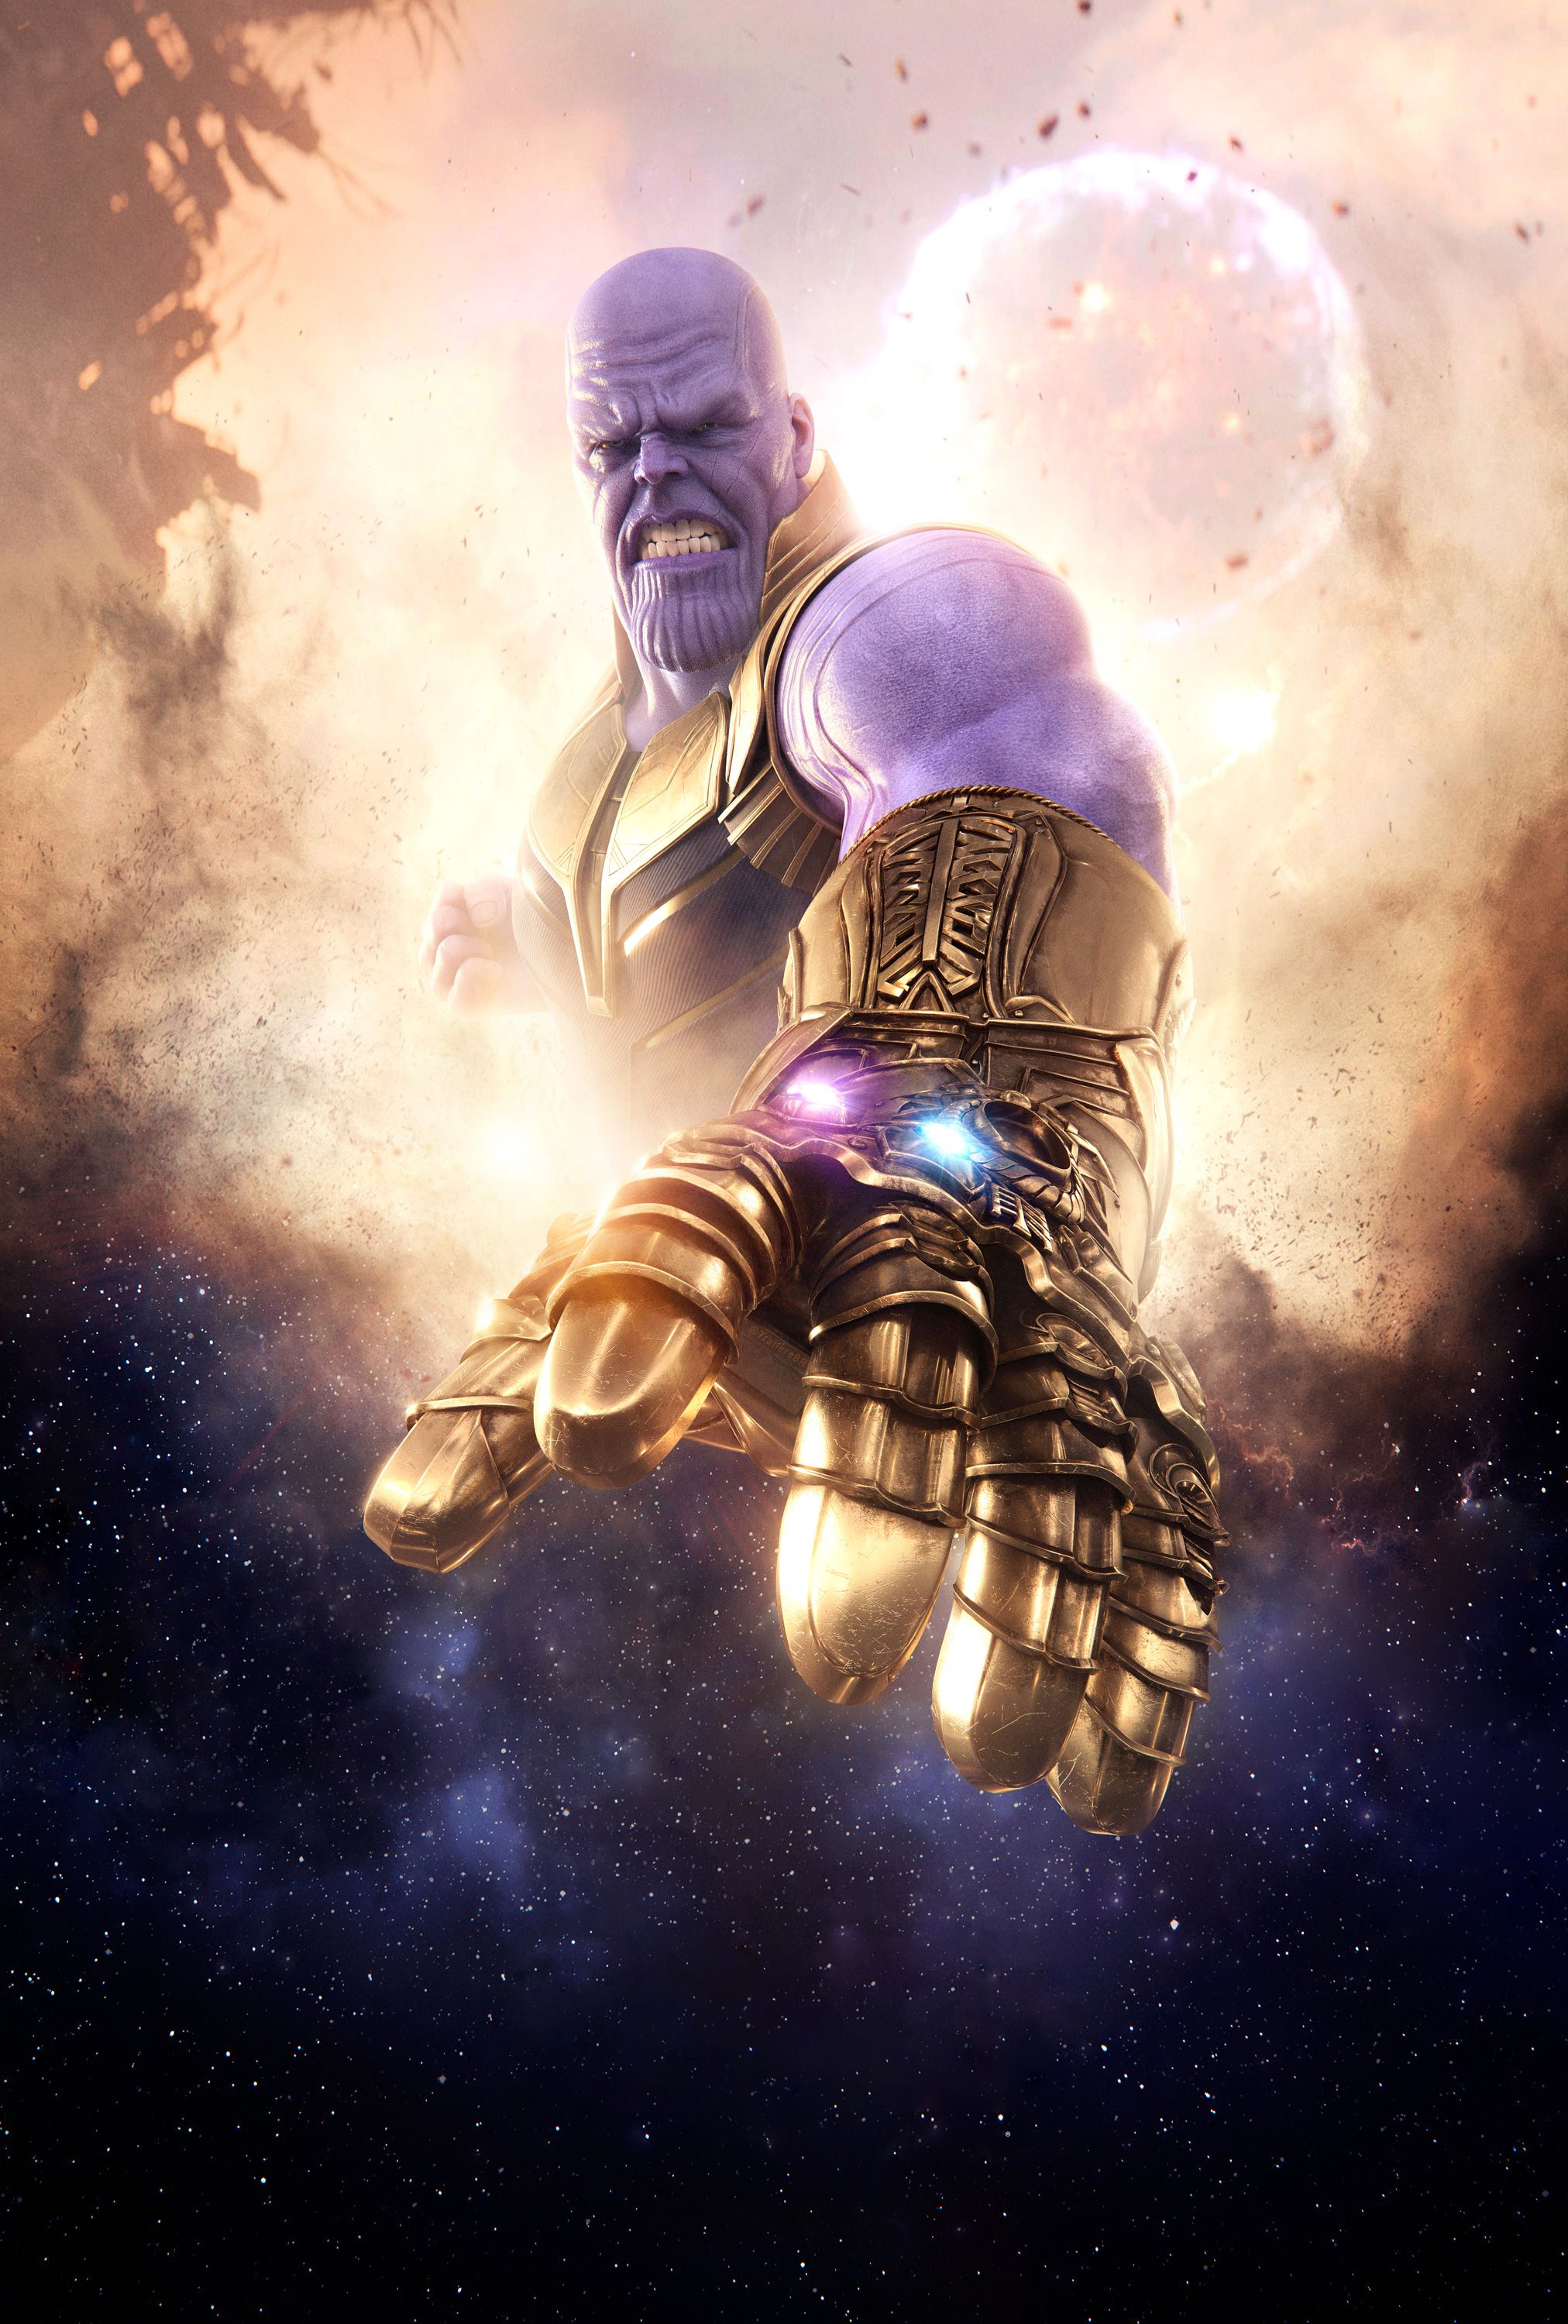 Avengers Infinity War Thanos Mobile Hd Wallpaper In